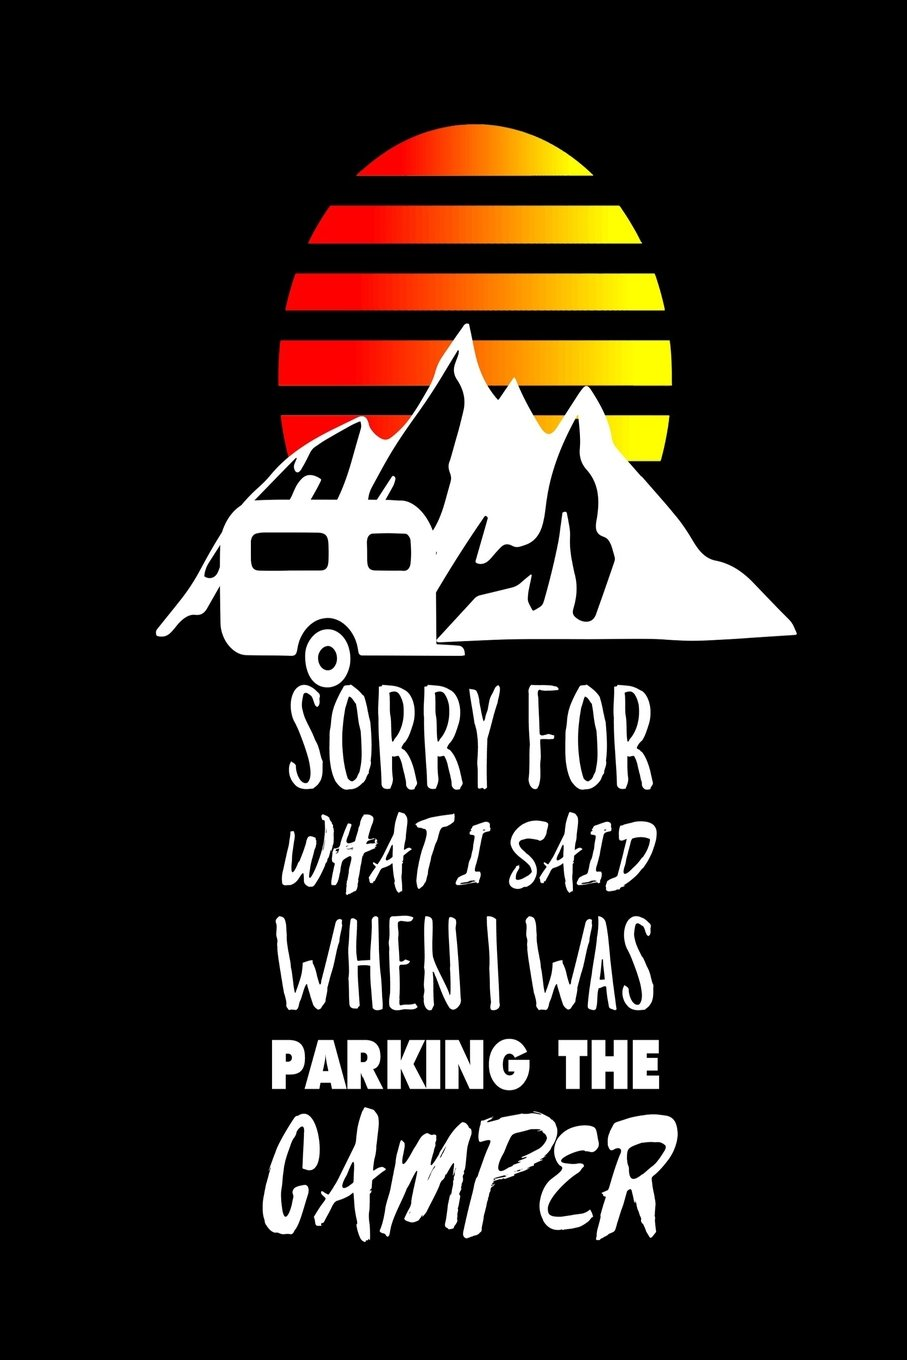 Sorry For What I Said When I Was Parking The Camper: Funny Camping Trip Summer Vacation Gift Notebook ebook